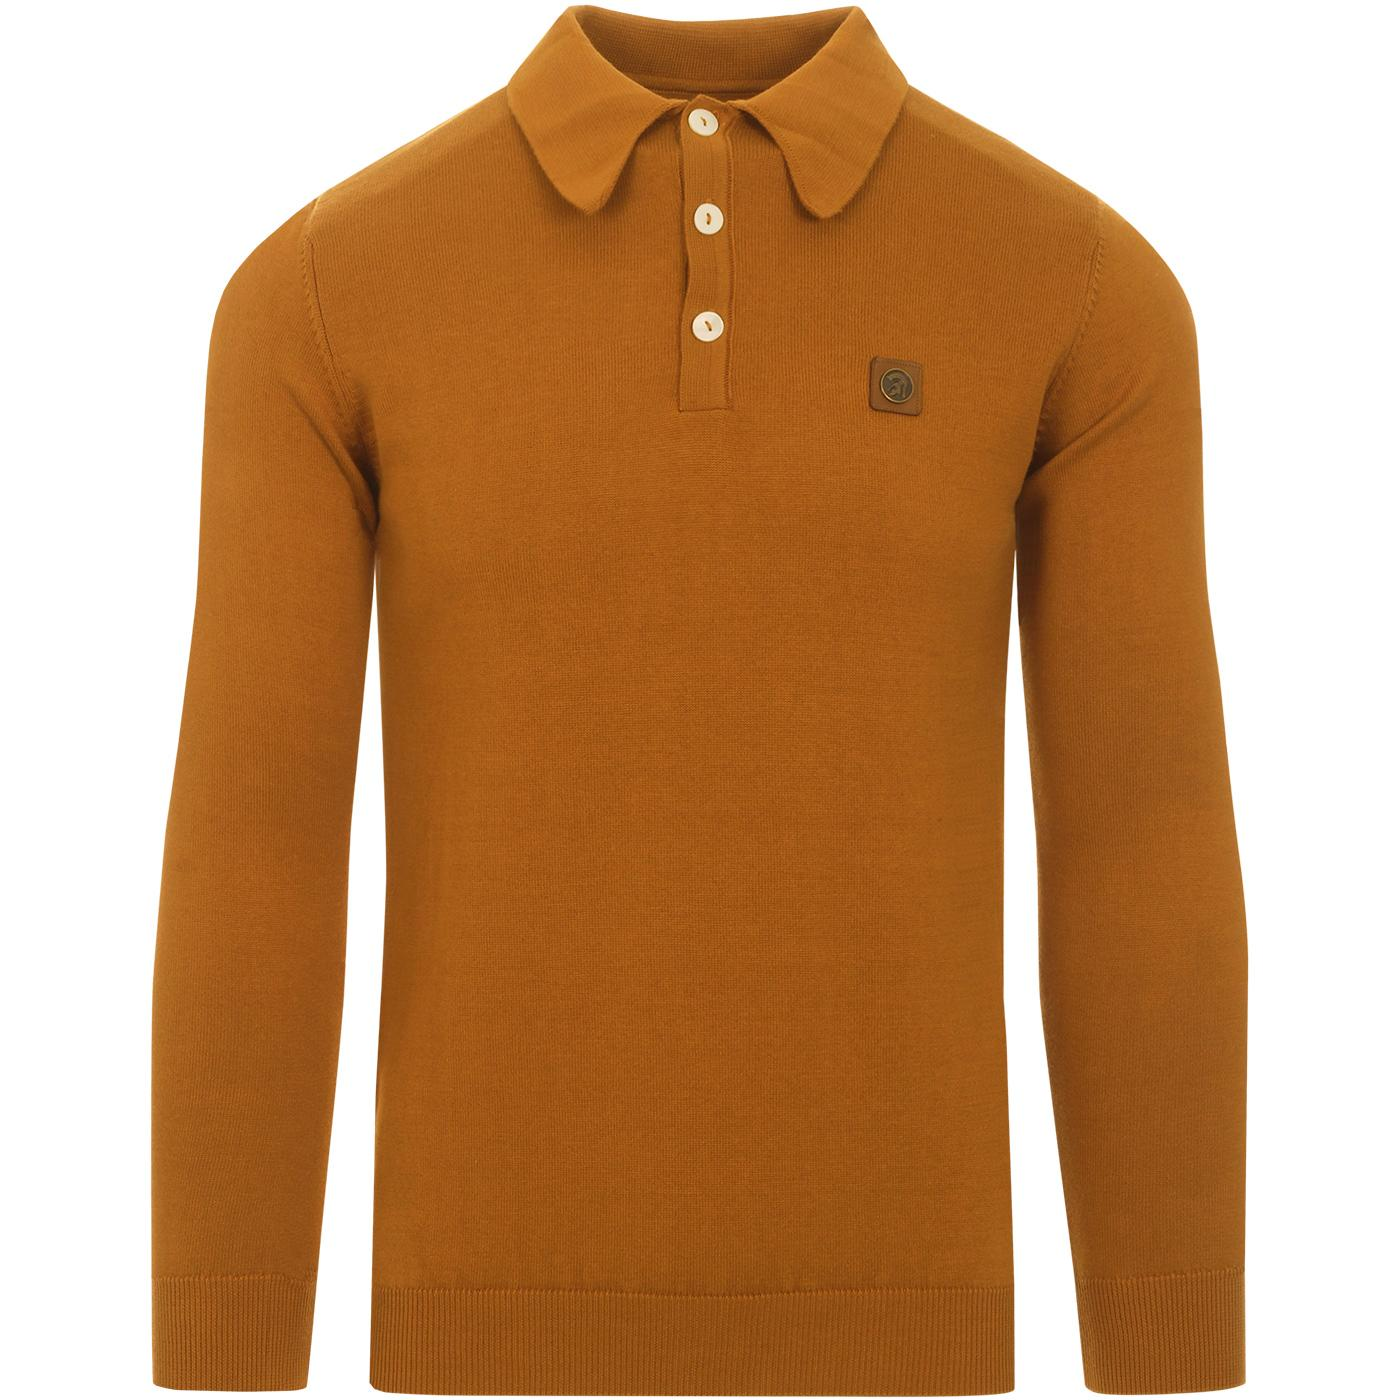 TROJAN RECORDS Men's Mod Knitted Polo Shirt (Tan)